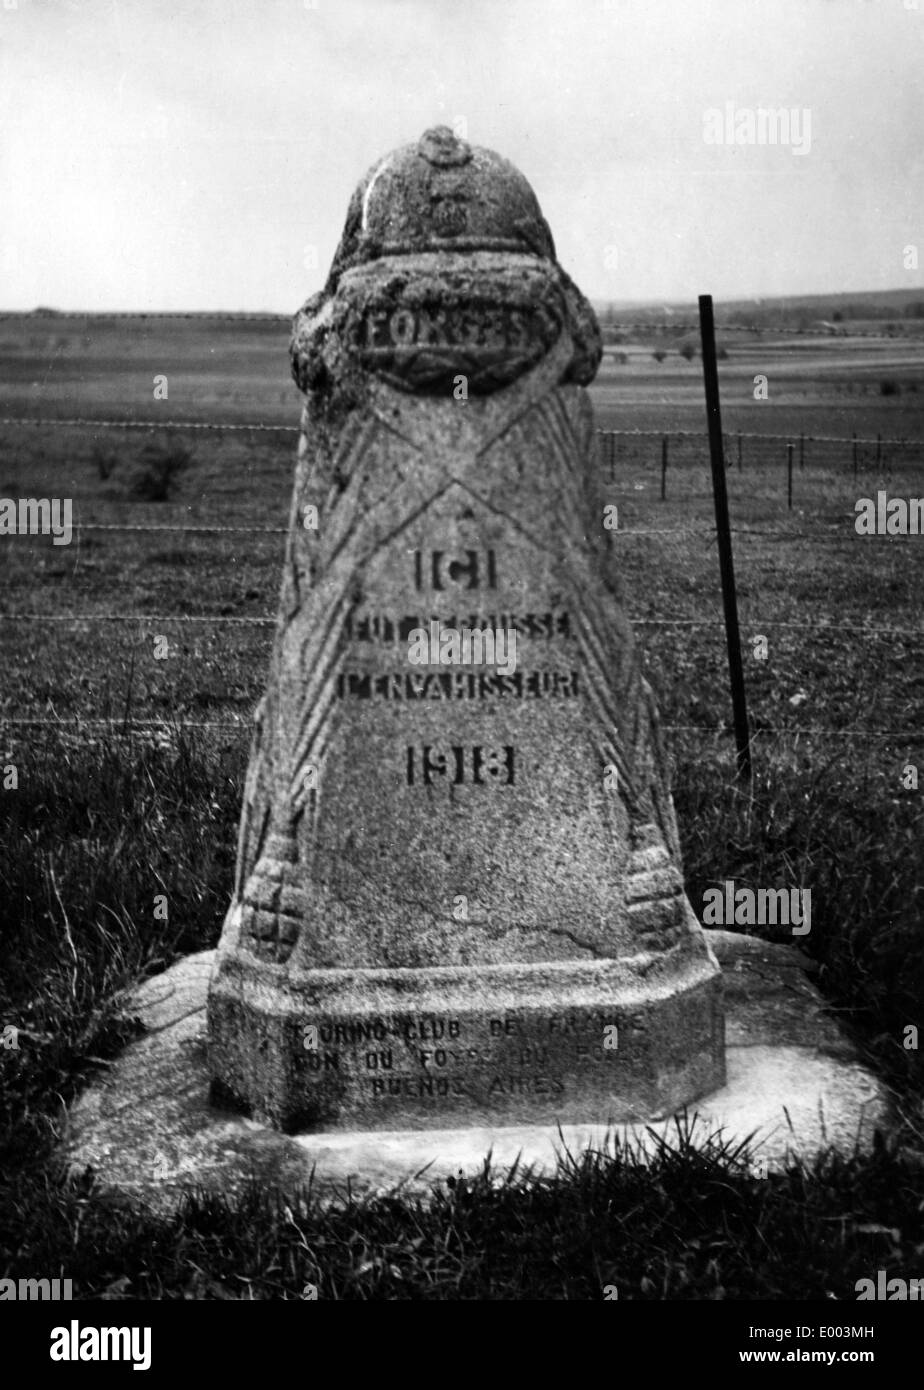 Memorial stone at the frontline of the last German offensive in 1918 - Stock Image